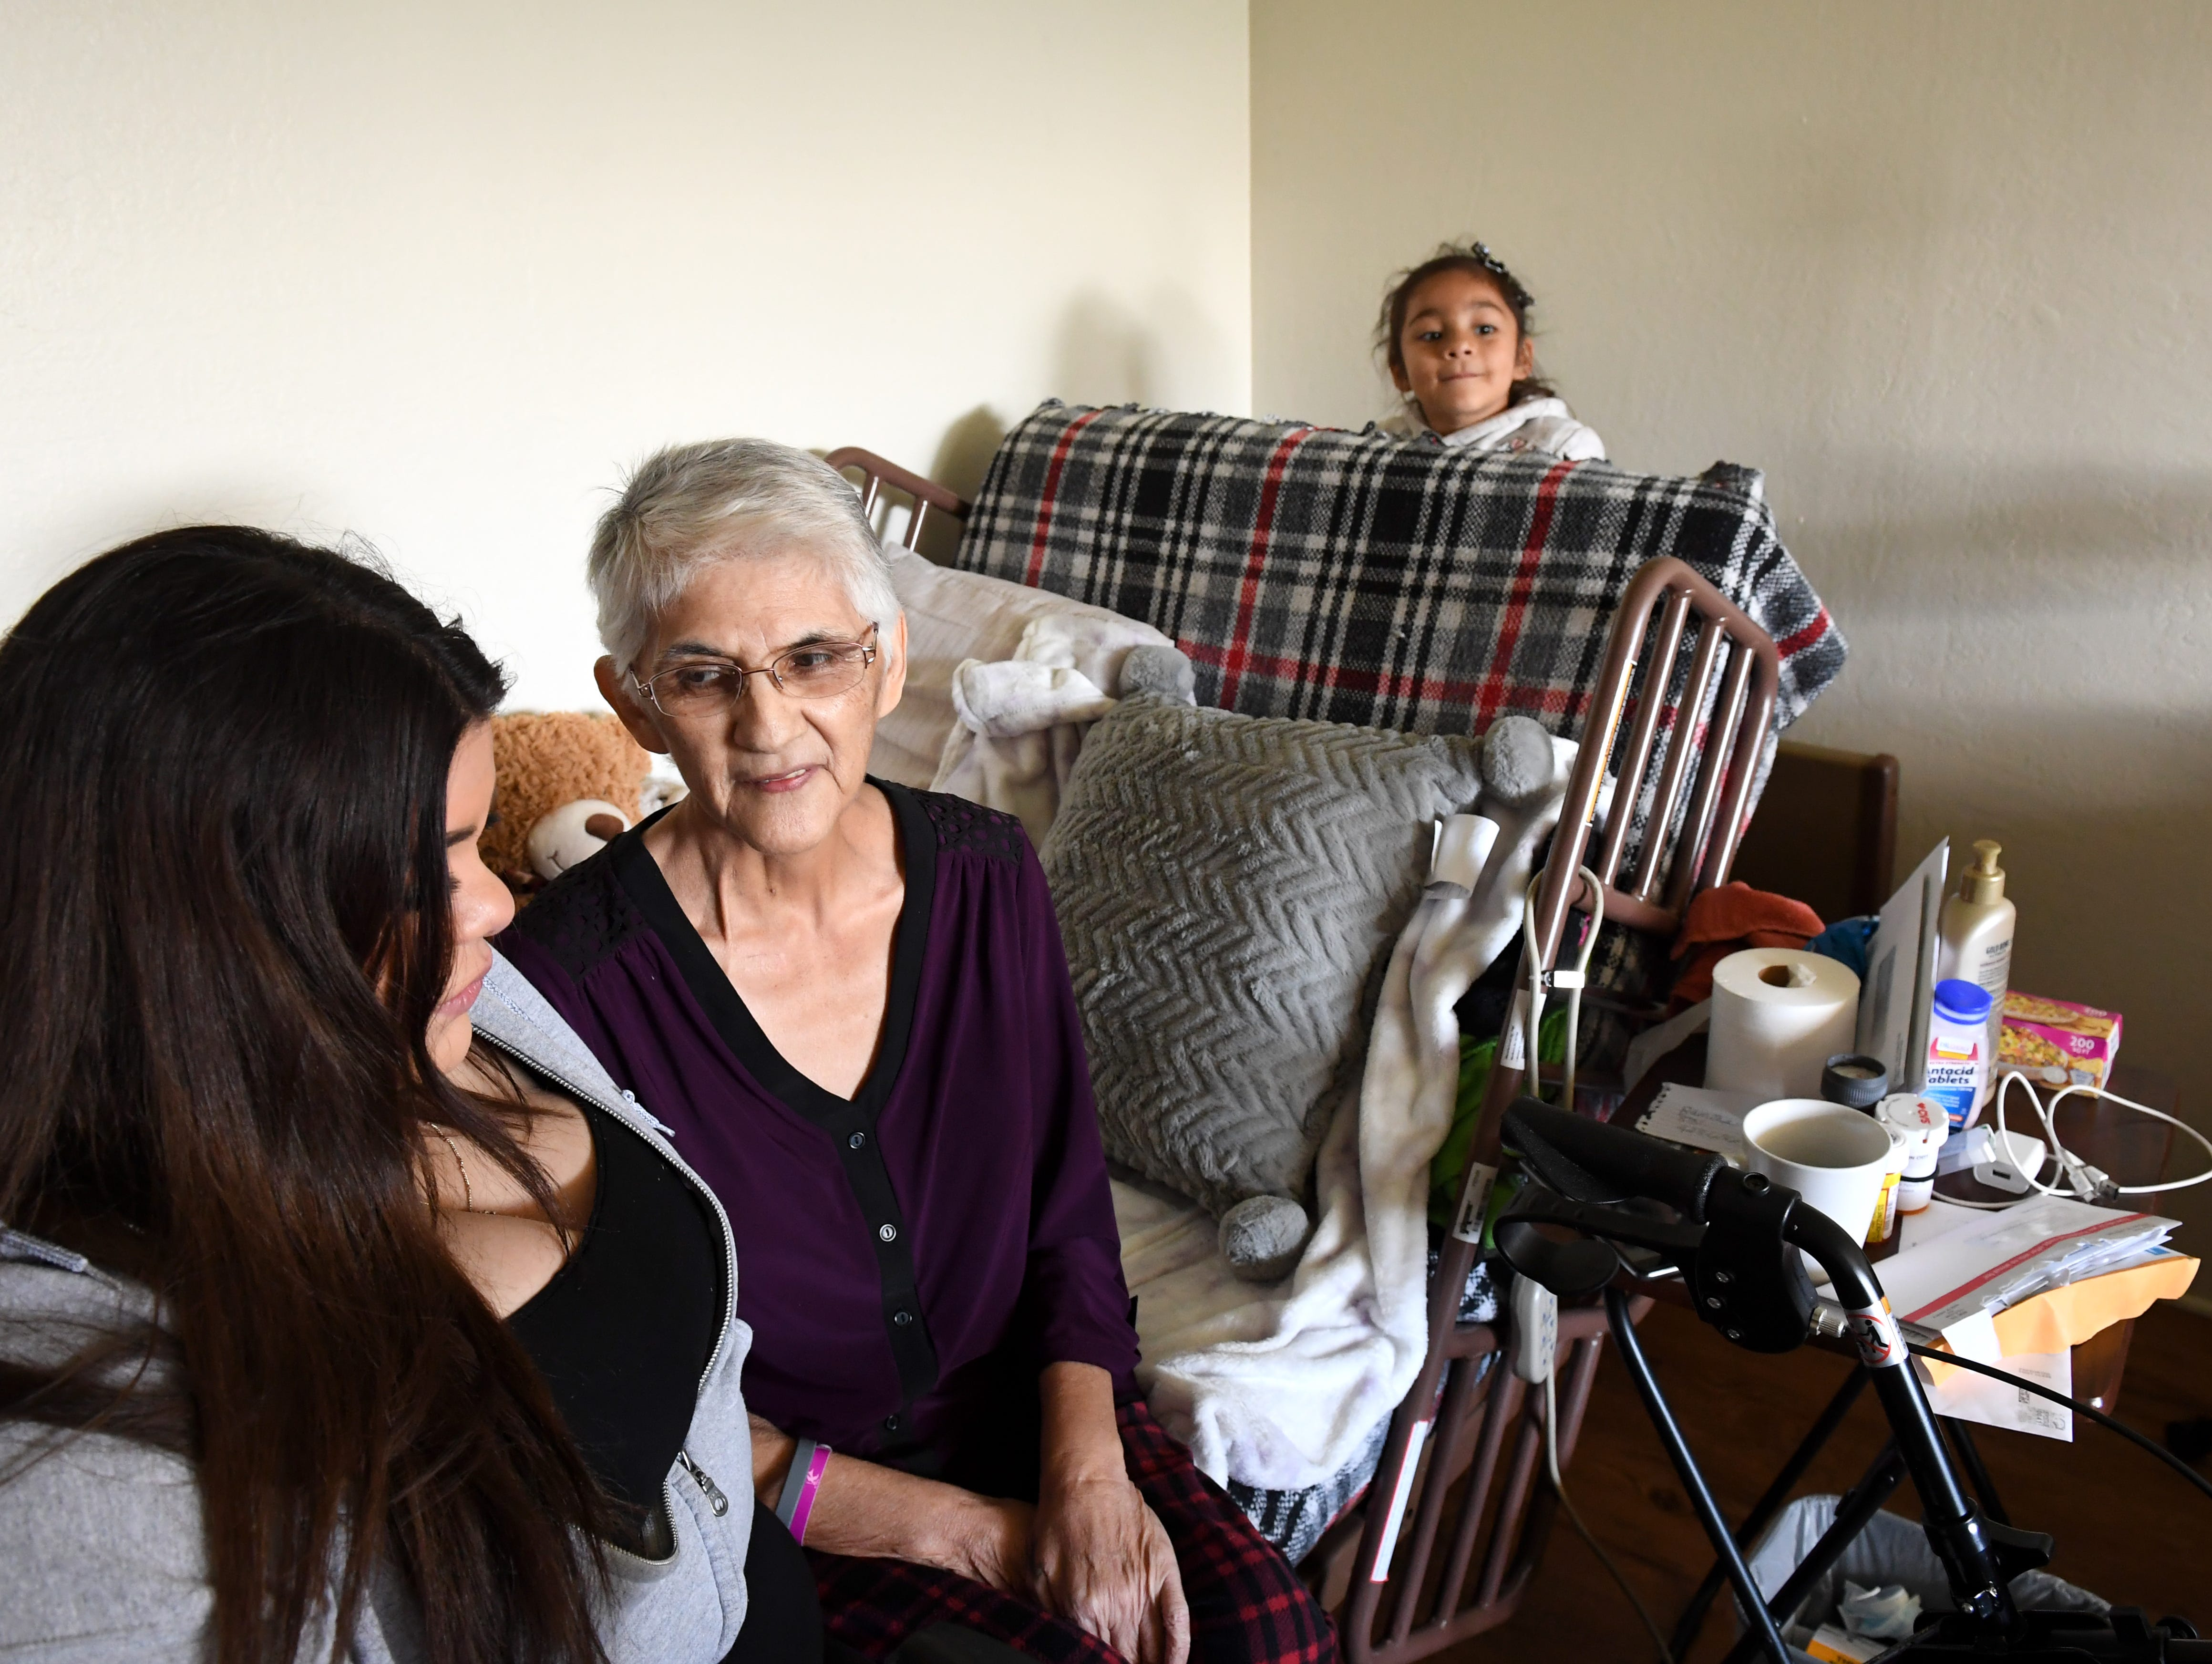 Gloria Torrez (middle seated) speaks with her granddaughter Gloria (left seated) while her other granddaughter Tiana plays behind her bed.